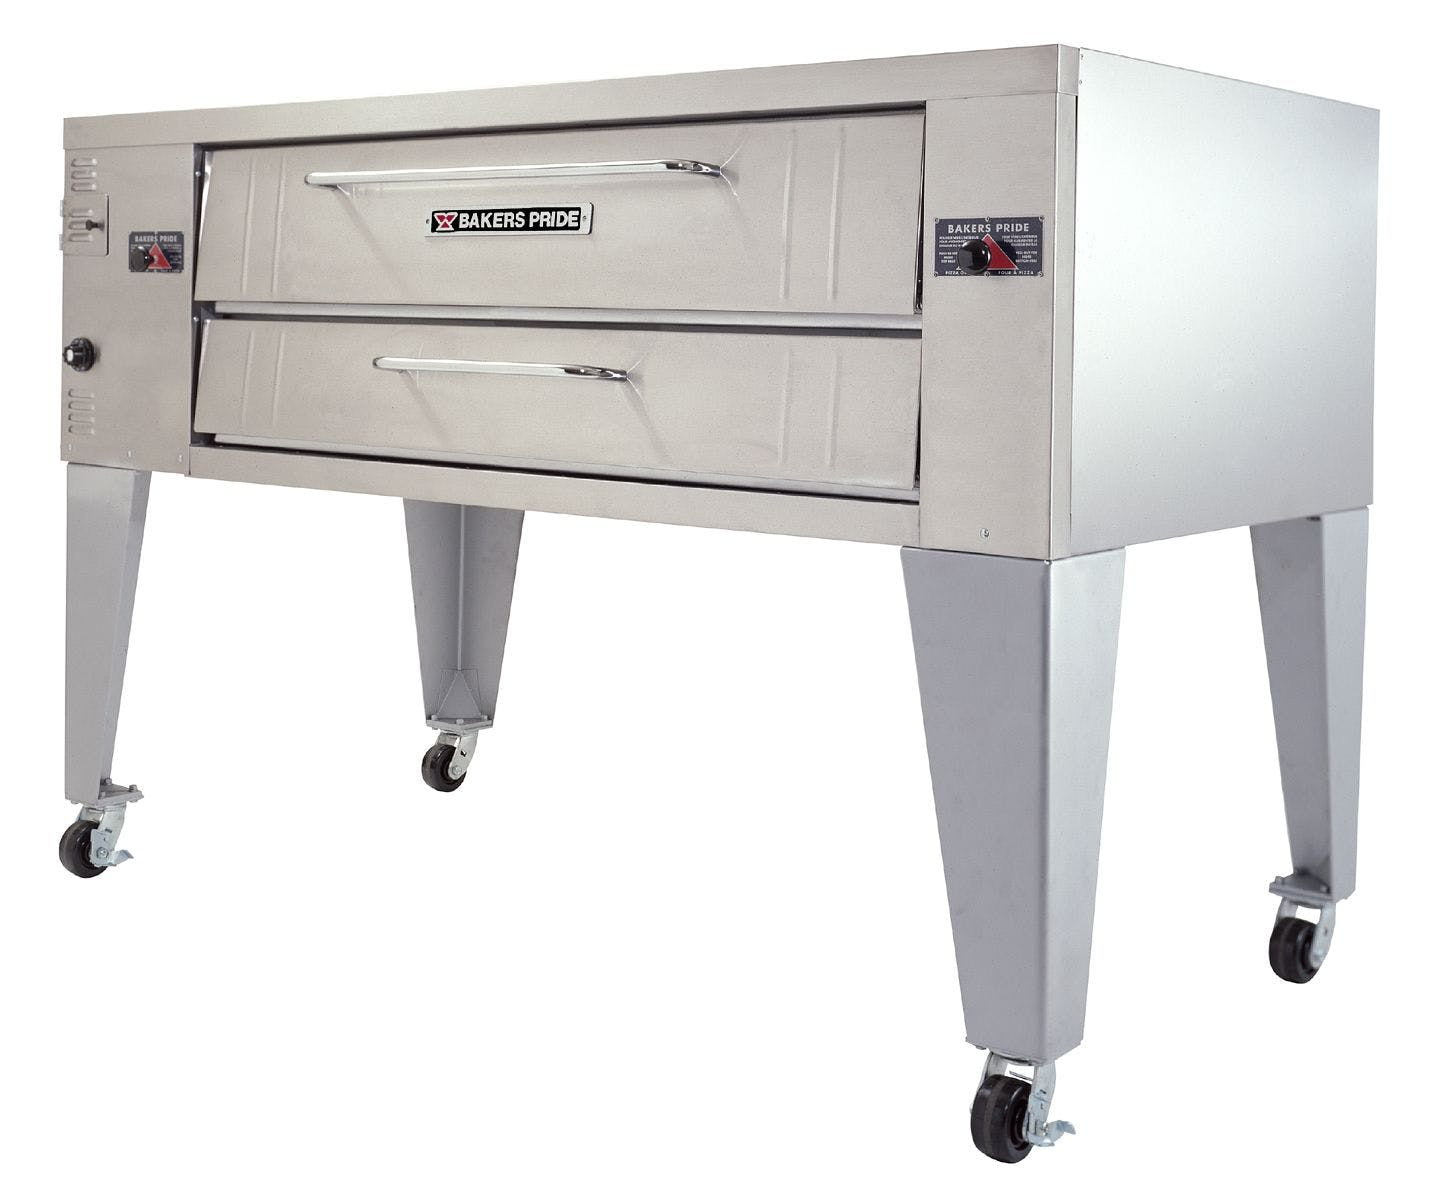 Bakers Pride Y Series Gas Deck Oven - sold by pizzaovens.com